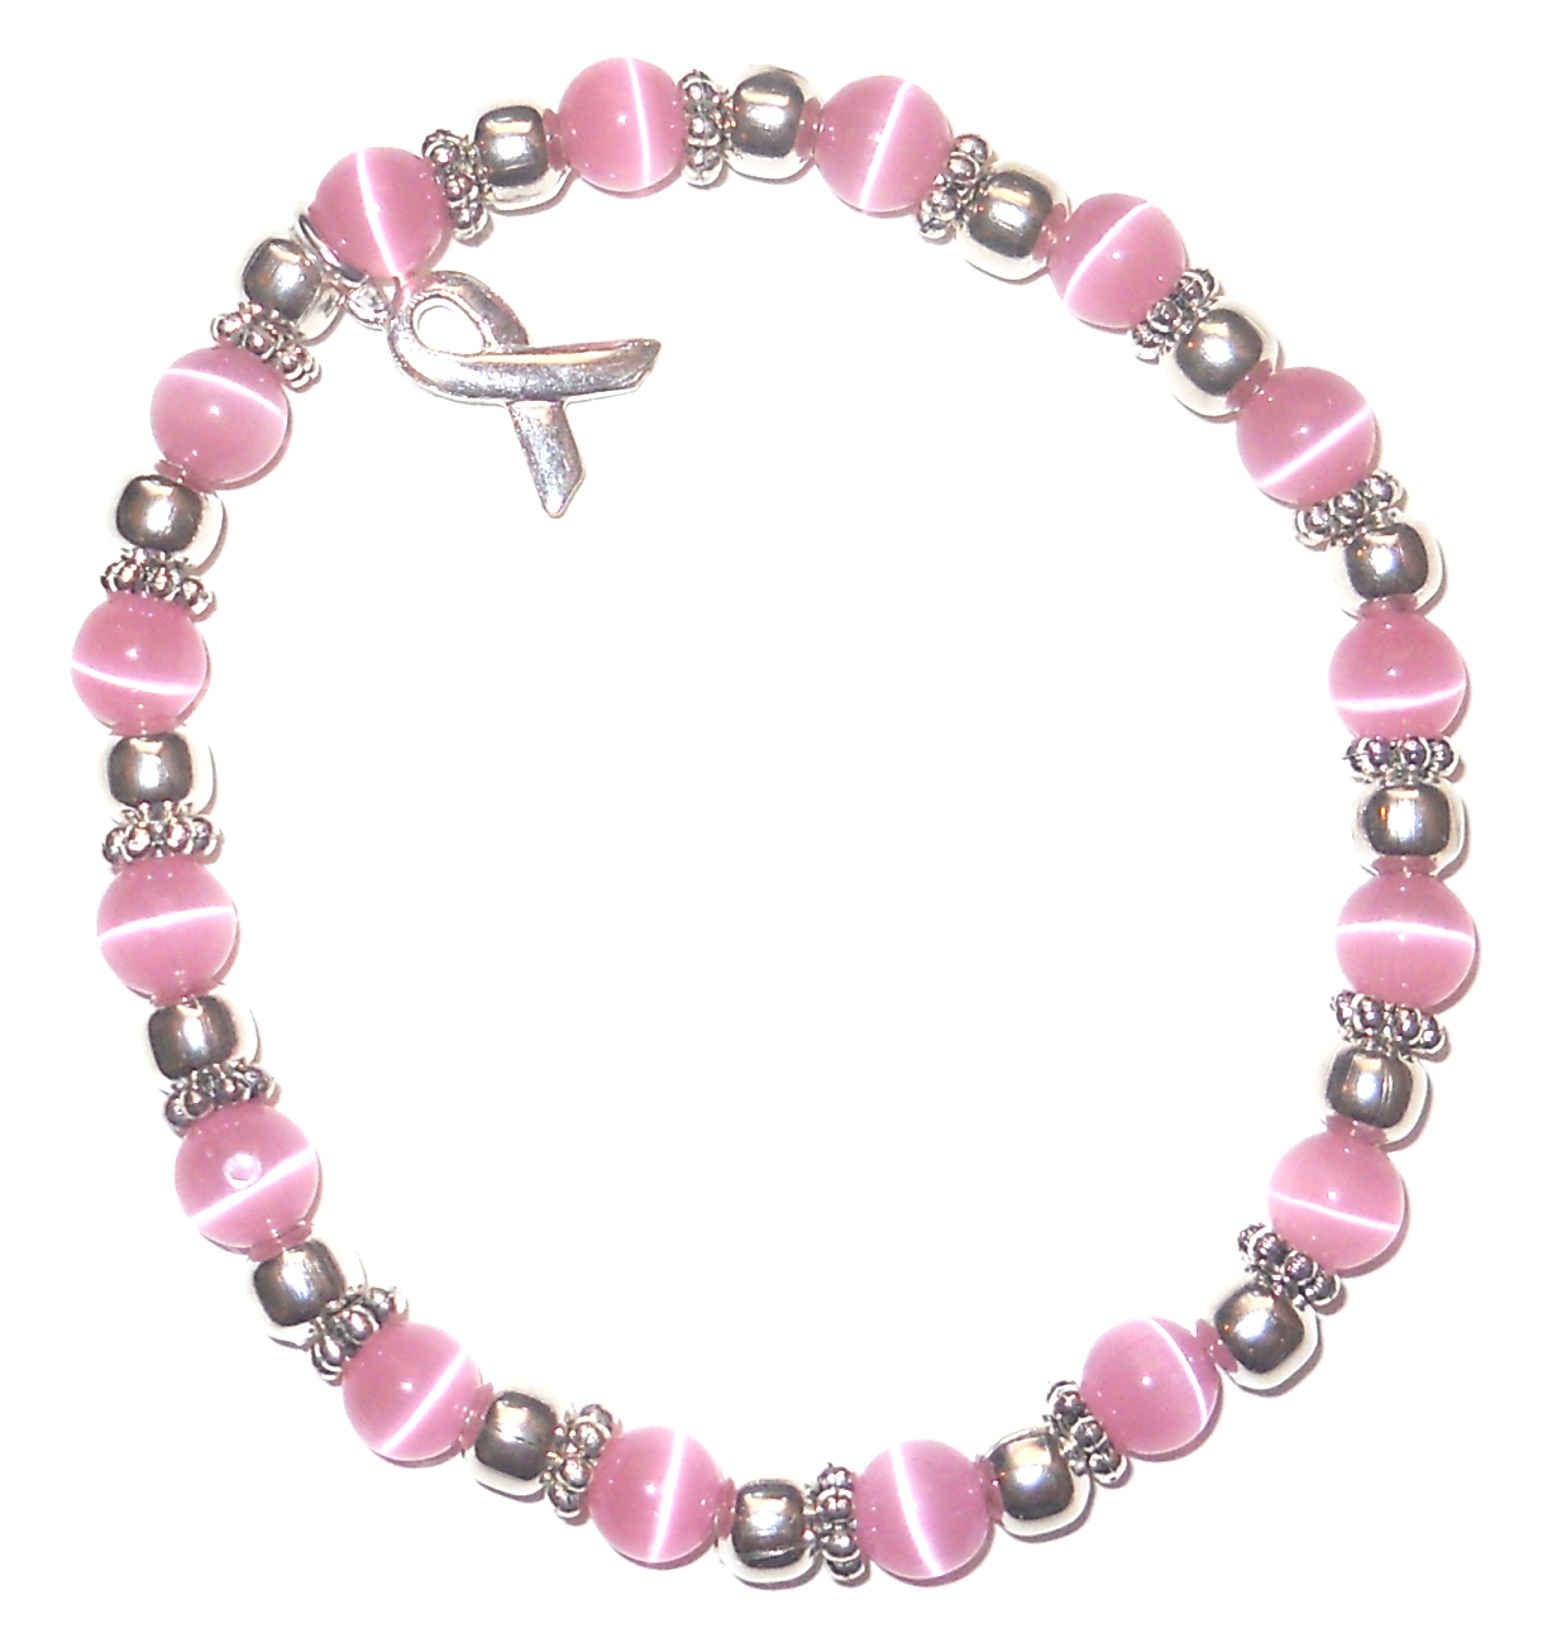 cancer c spectacular awareness bracelet mzcb jewelry prostate elisa thyroid ilana ei colon